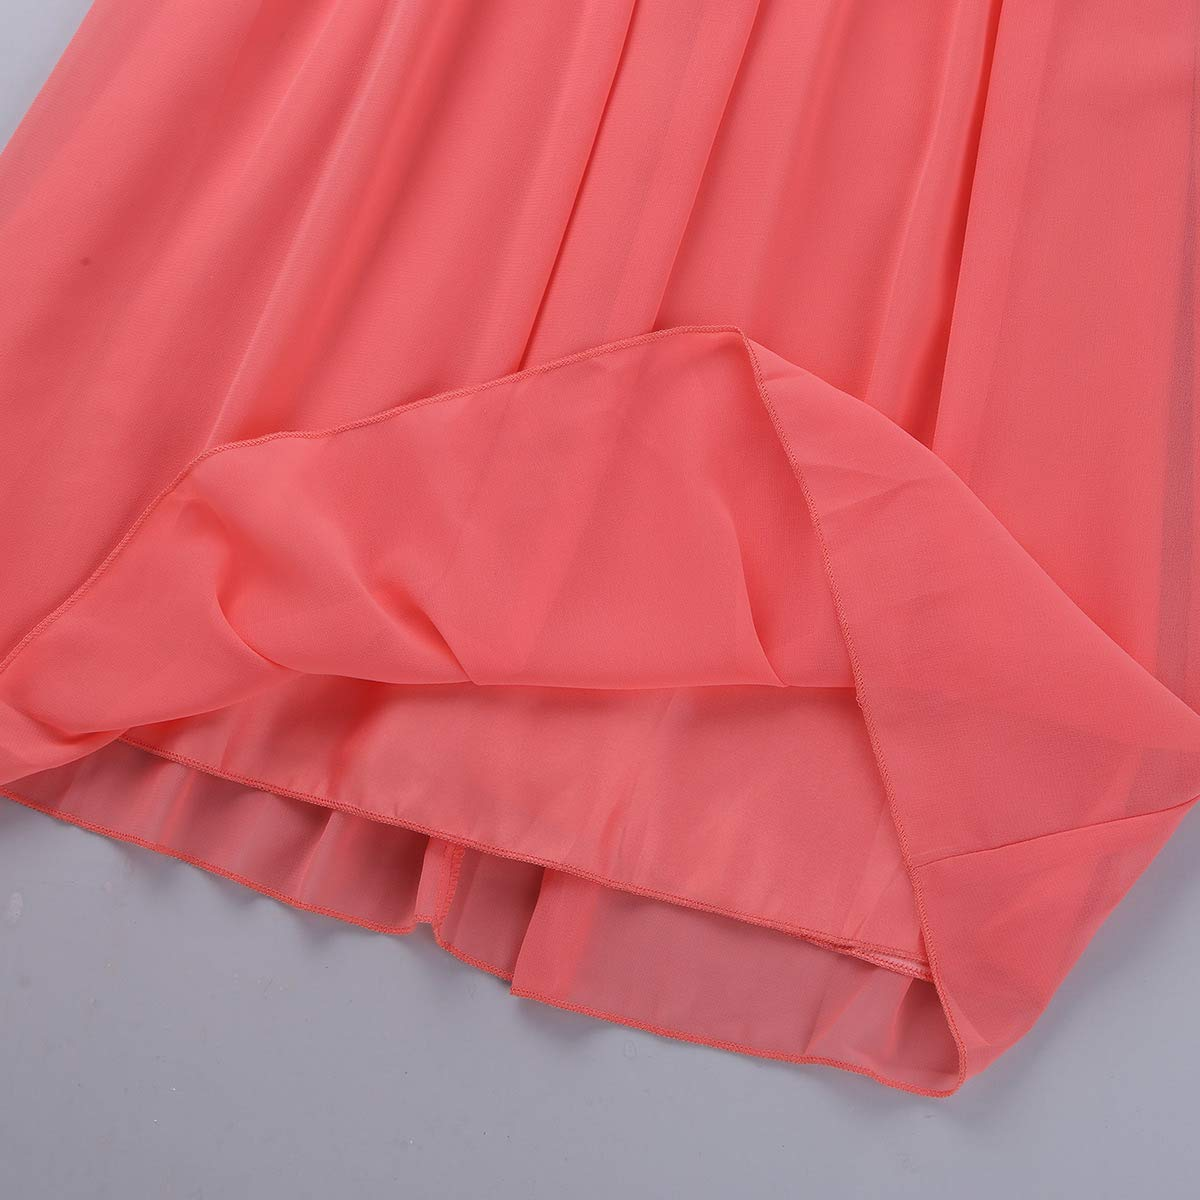 CHICTRY Kids Big Girls Pleated Elegant Long Bridesmaid Dress Party Wedding Graduation Chiffon Gown